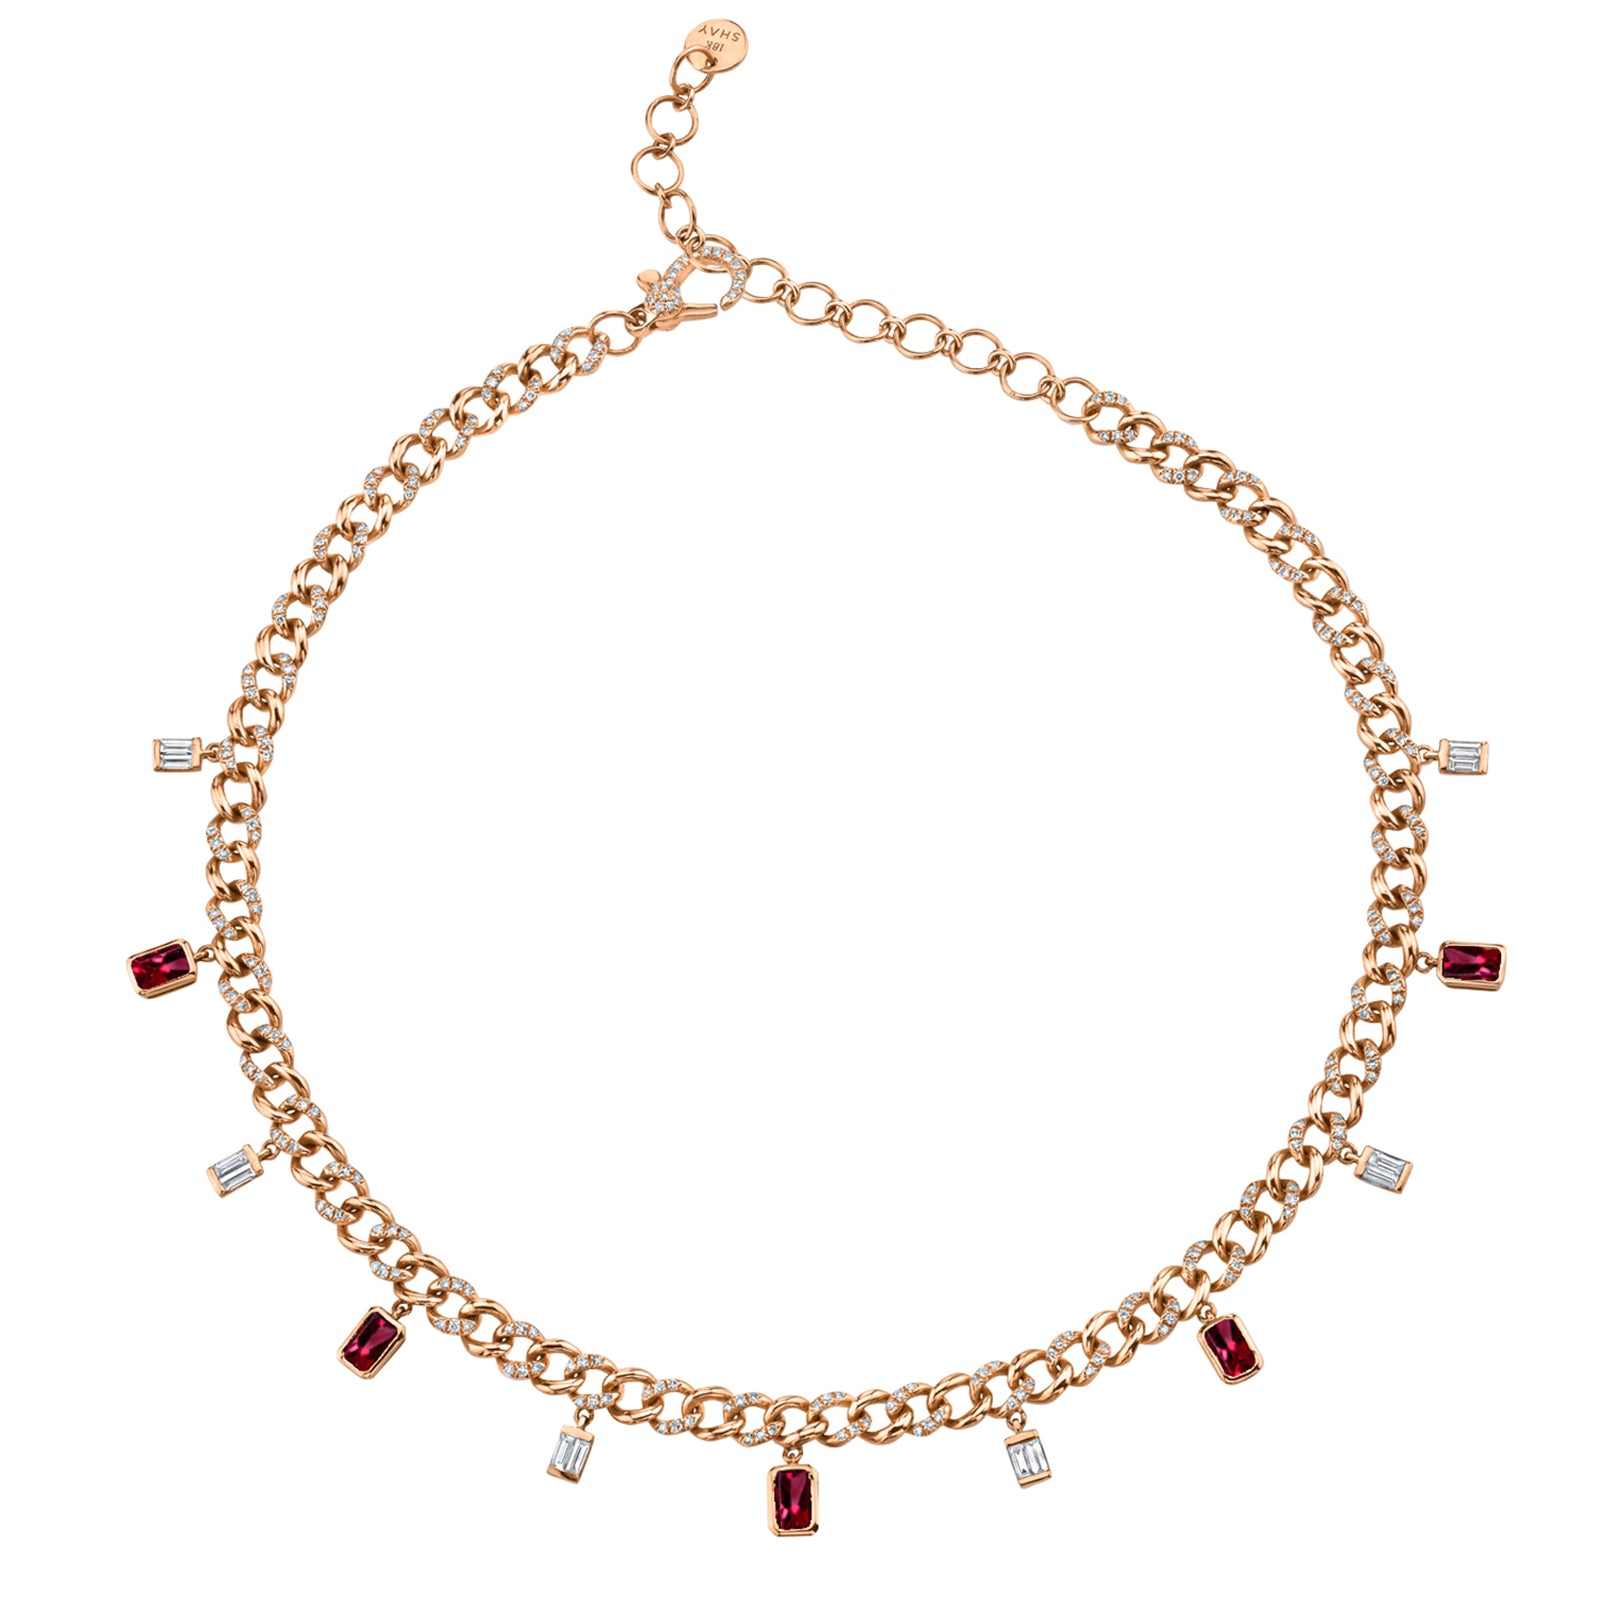 Shay Mini Alternating Diamond & Ruby Link Necklace - Rose Gold - Necklaces - Broken English Jewelry